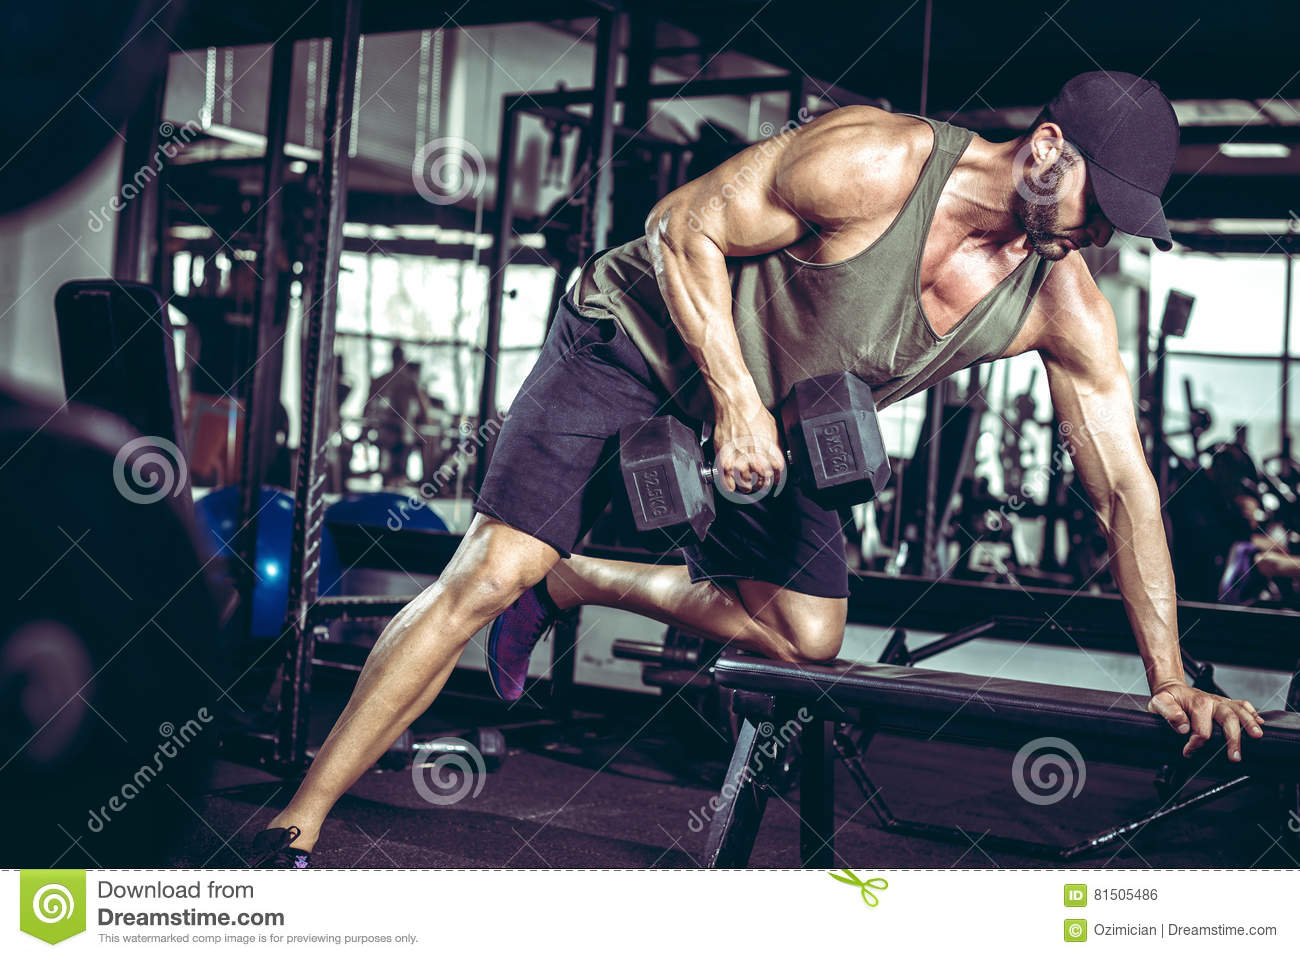 One-arm dumbbell rows in gym